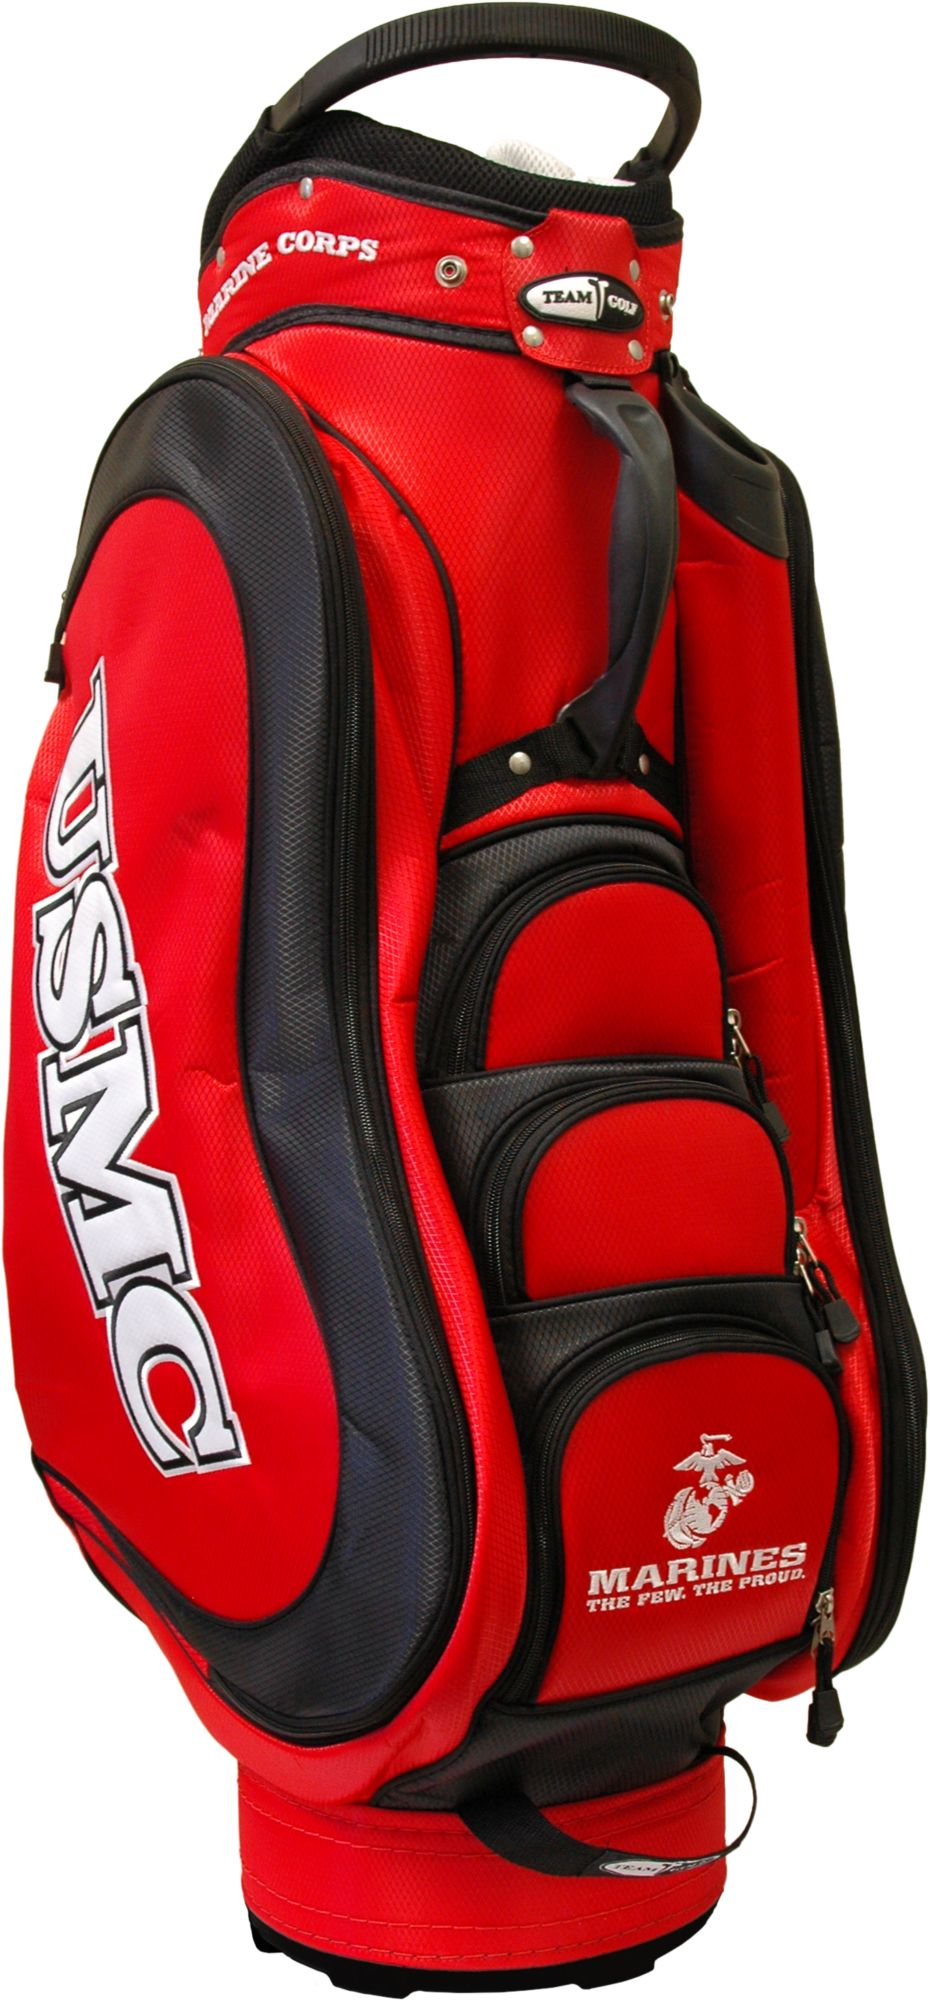 Team Golf Marine Corp Cart Bag